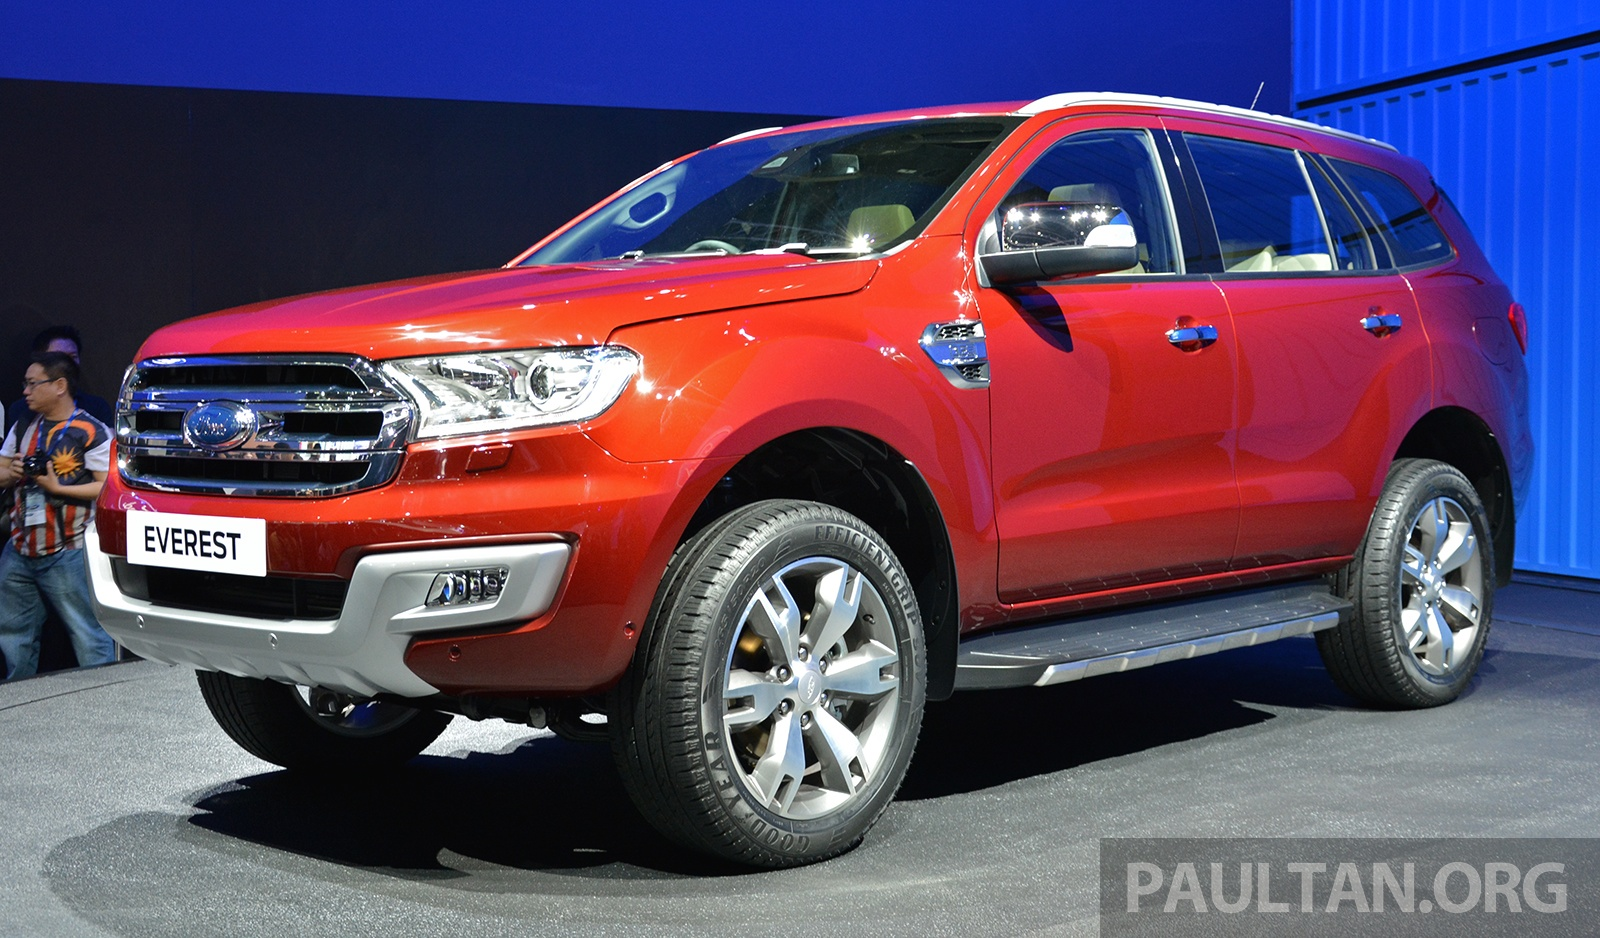 2015 ford everest reviews - 2015 Ford Everest Reviews 9